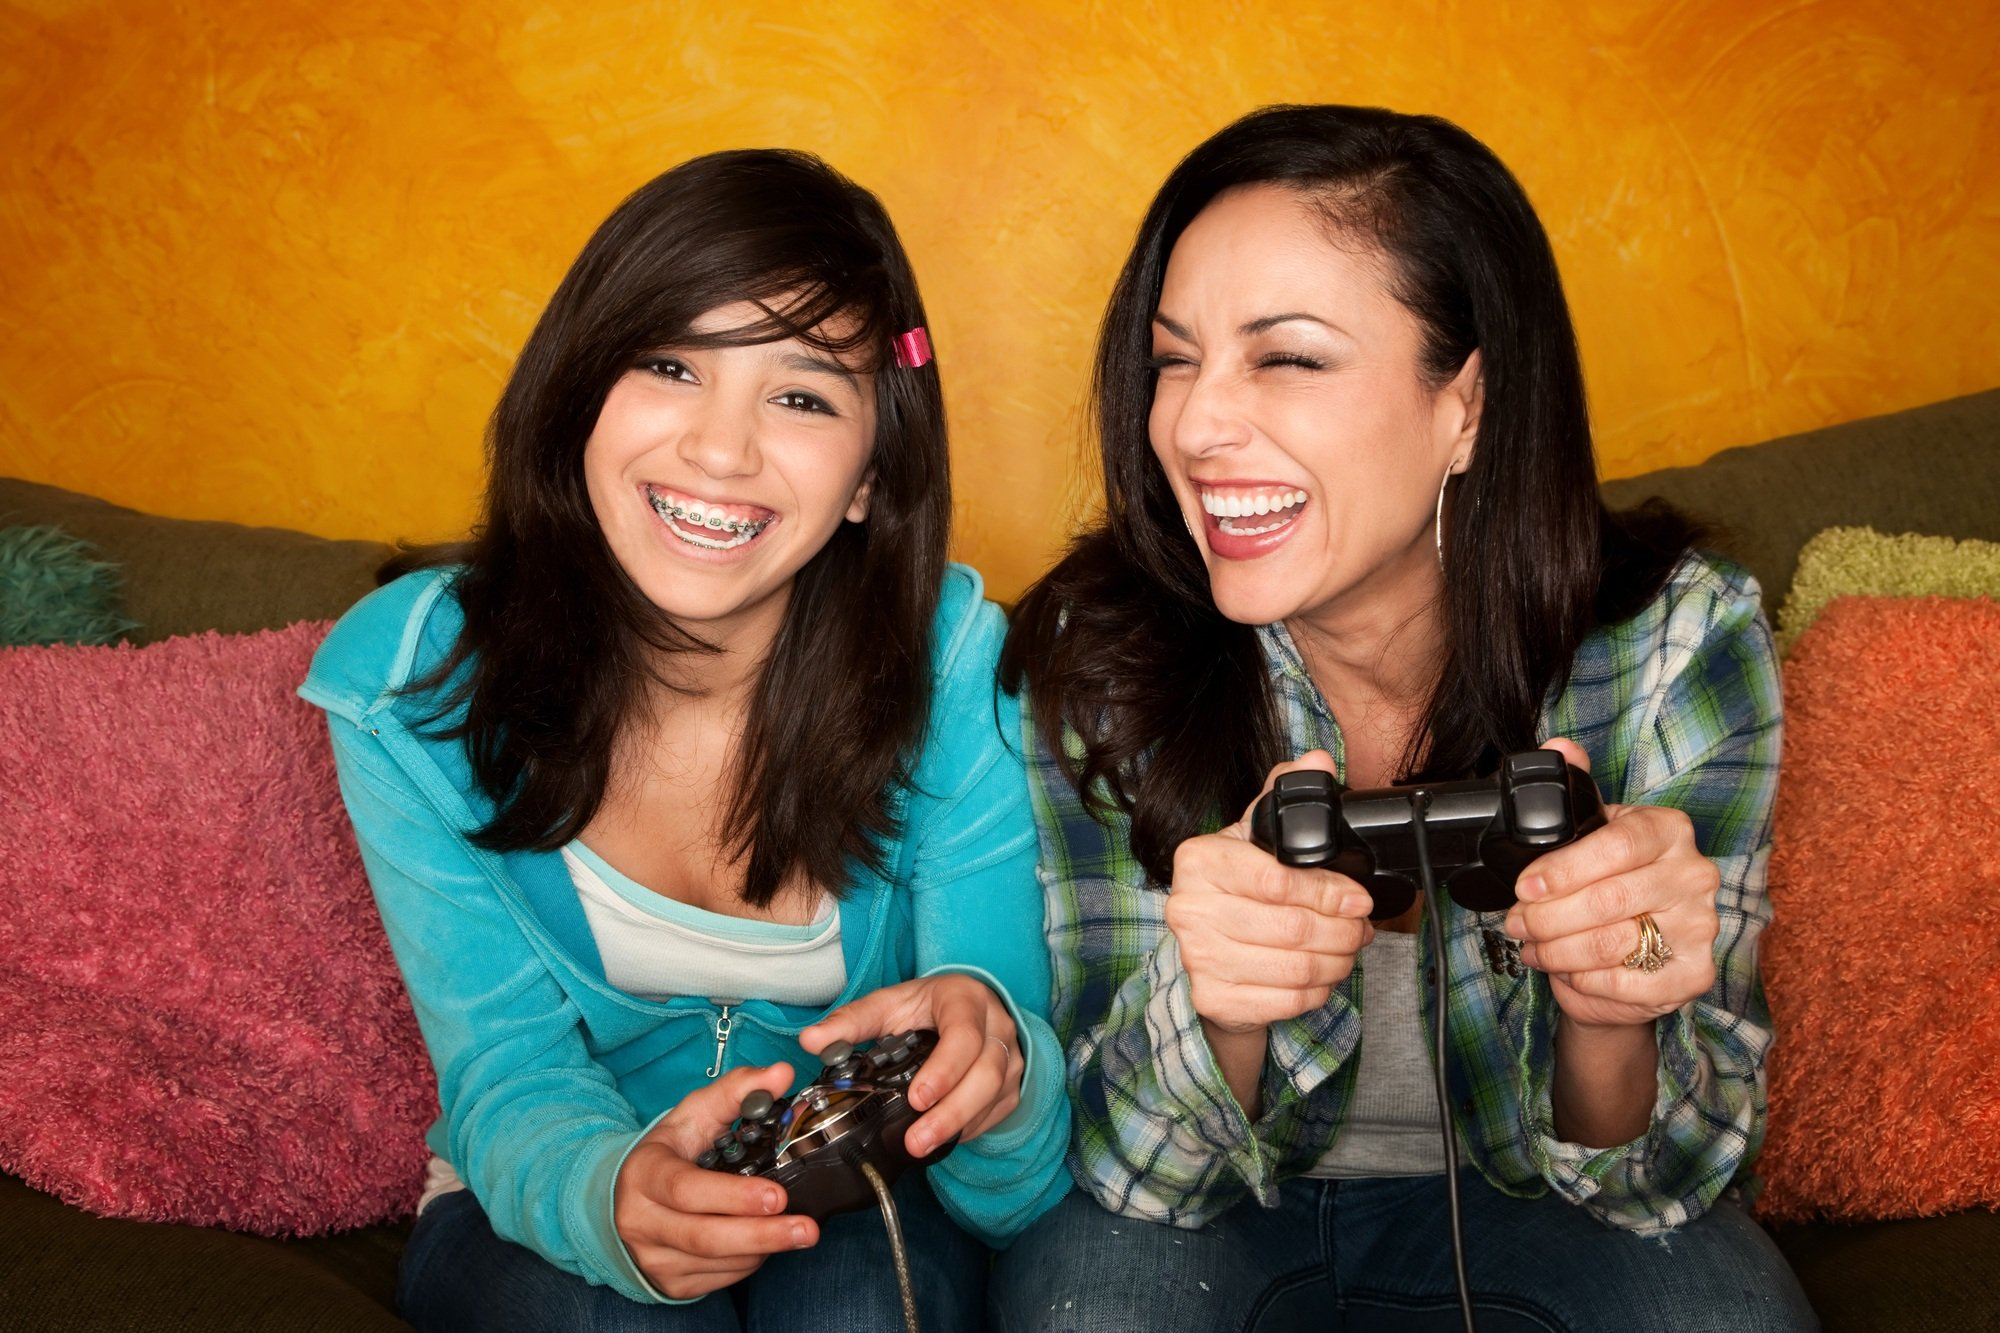 Play your daughter's favorite video game with her